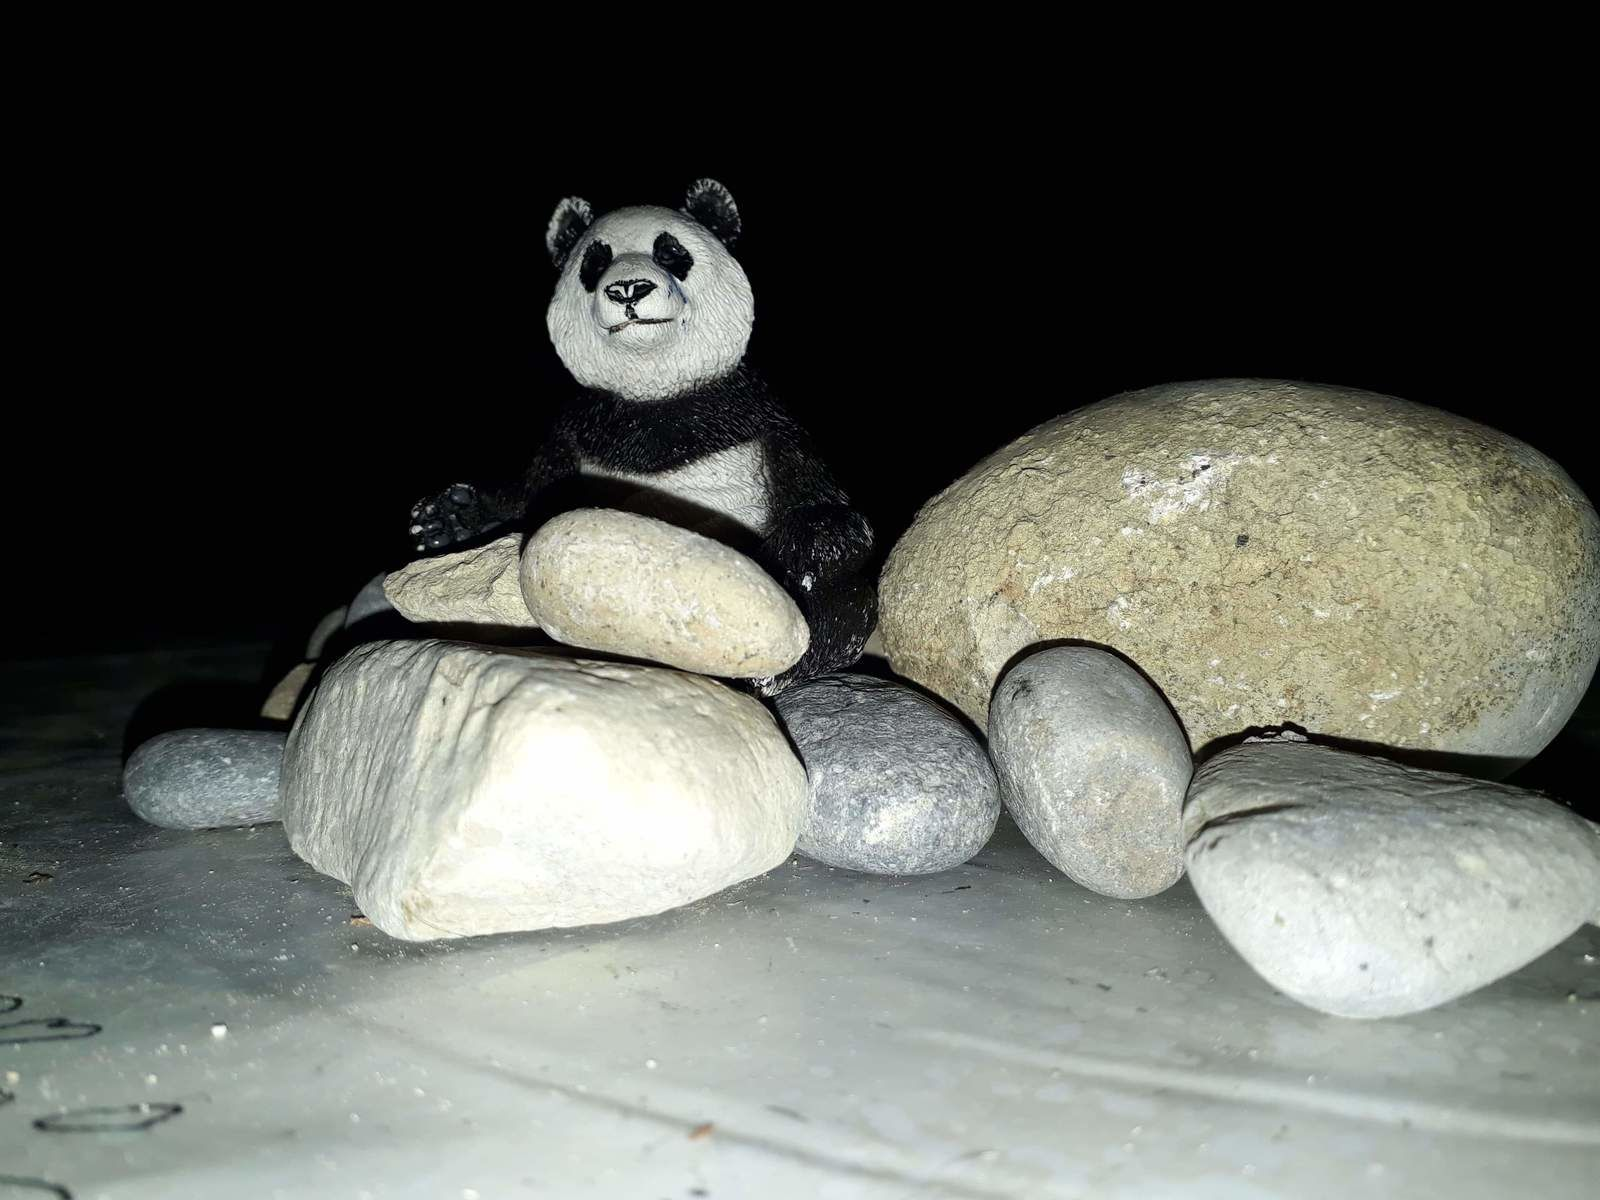 Petit Panda de nuit [photographie @elodivague - iPhone photo]